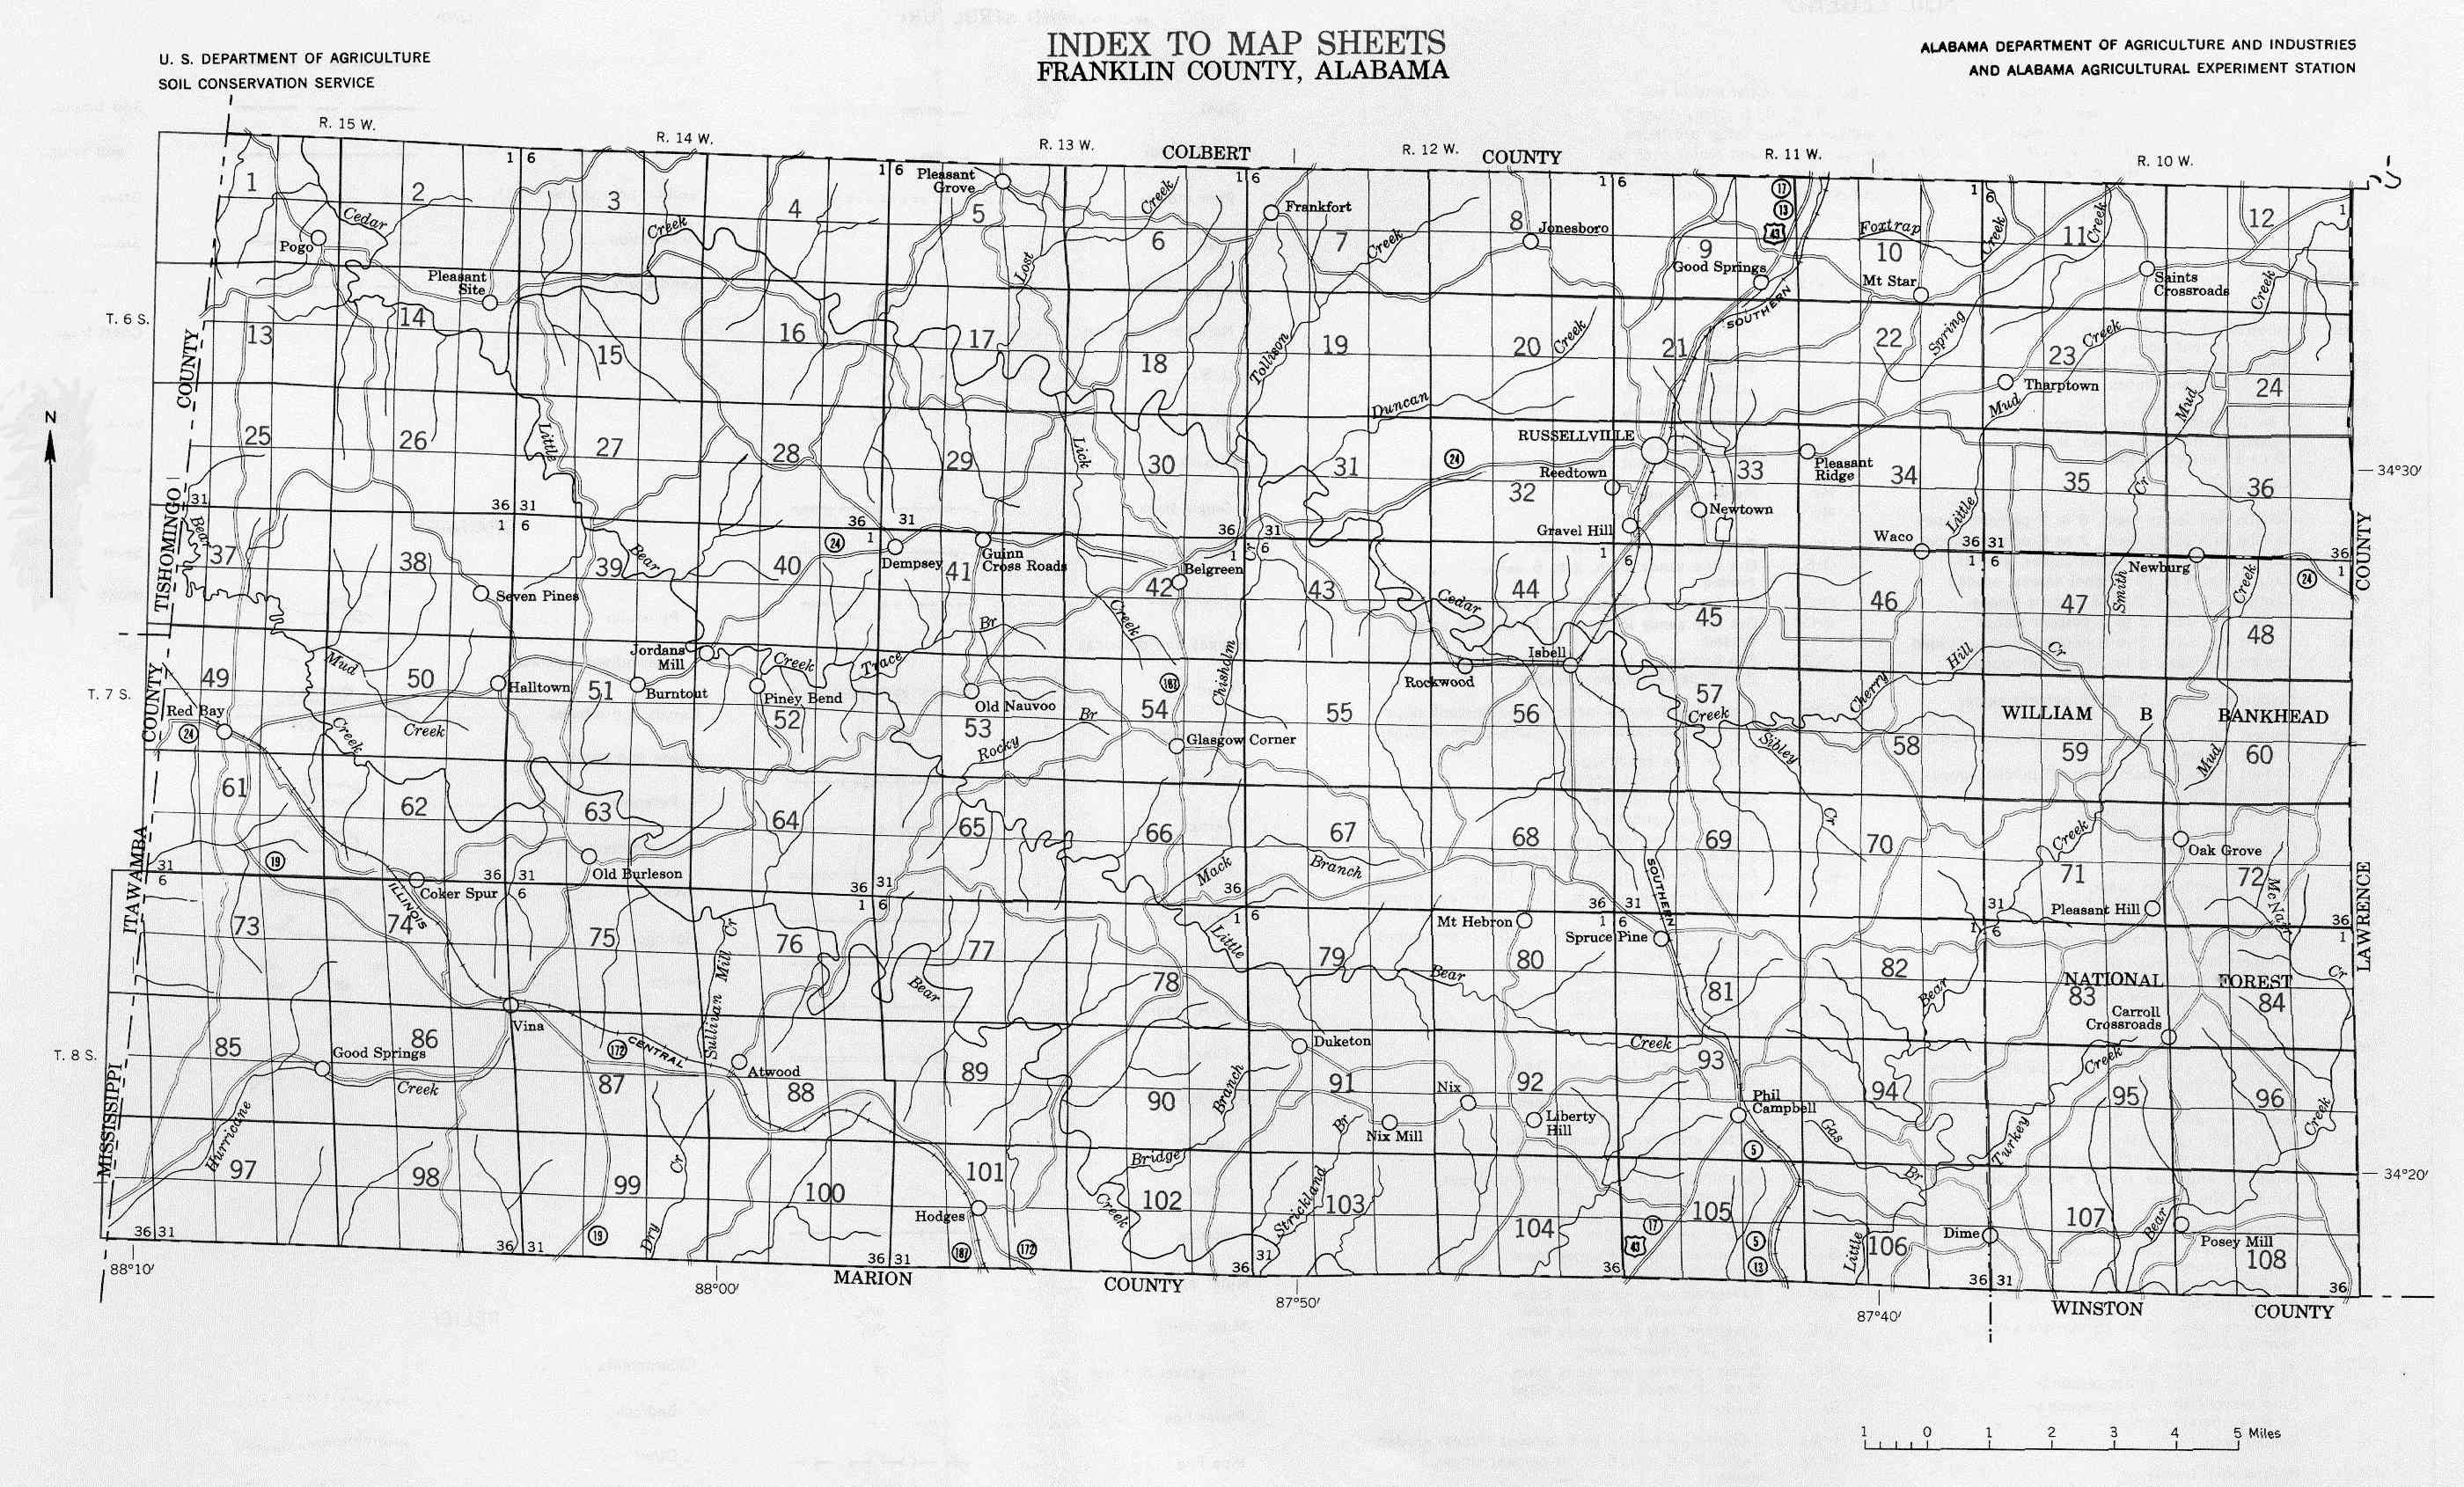 These Soil Survey Maps Were Compiled In 1963 As A Part Of A Soil Survey By The Soil Conservation Service U S Department Of Agriculture